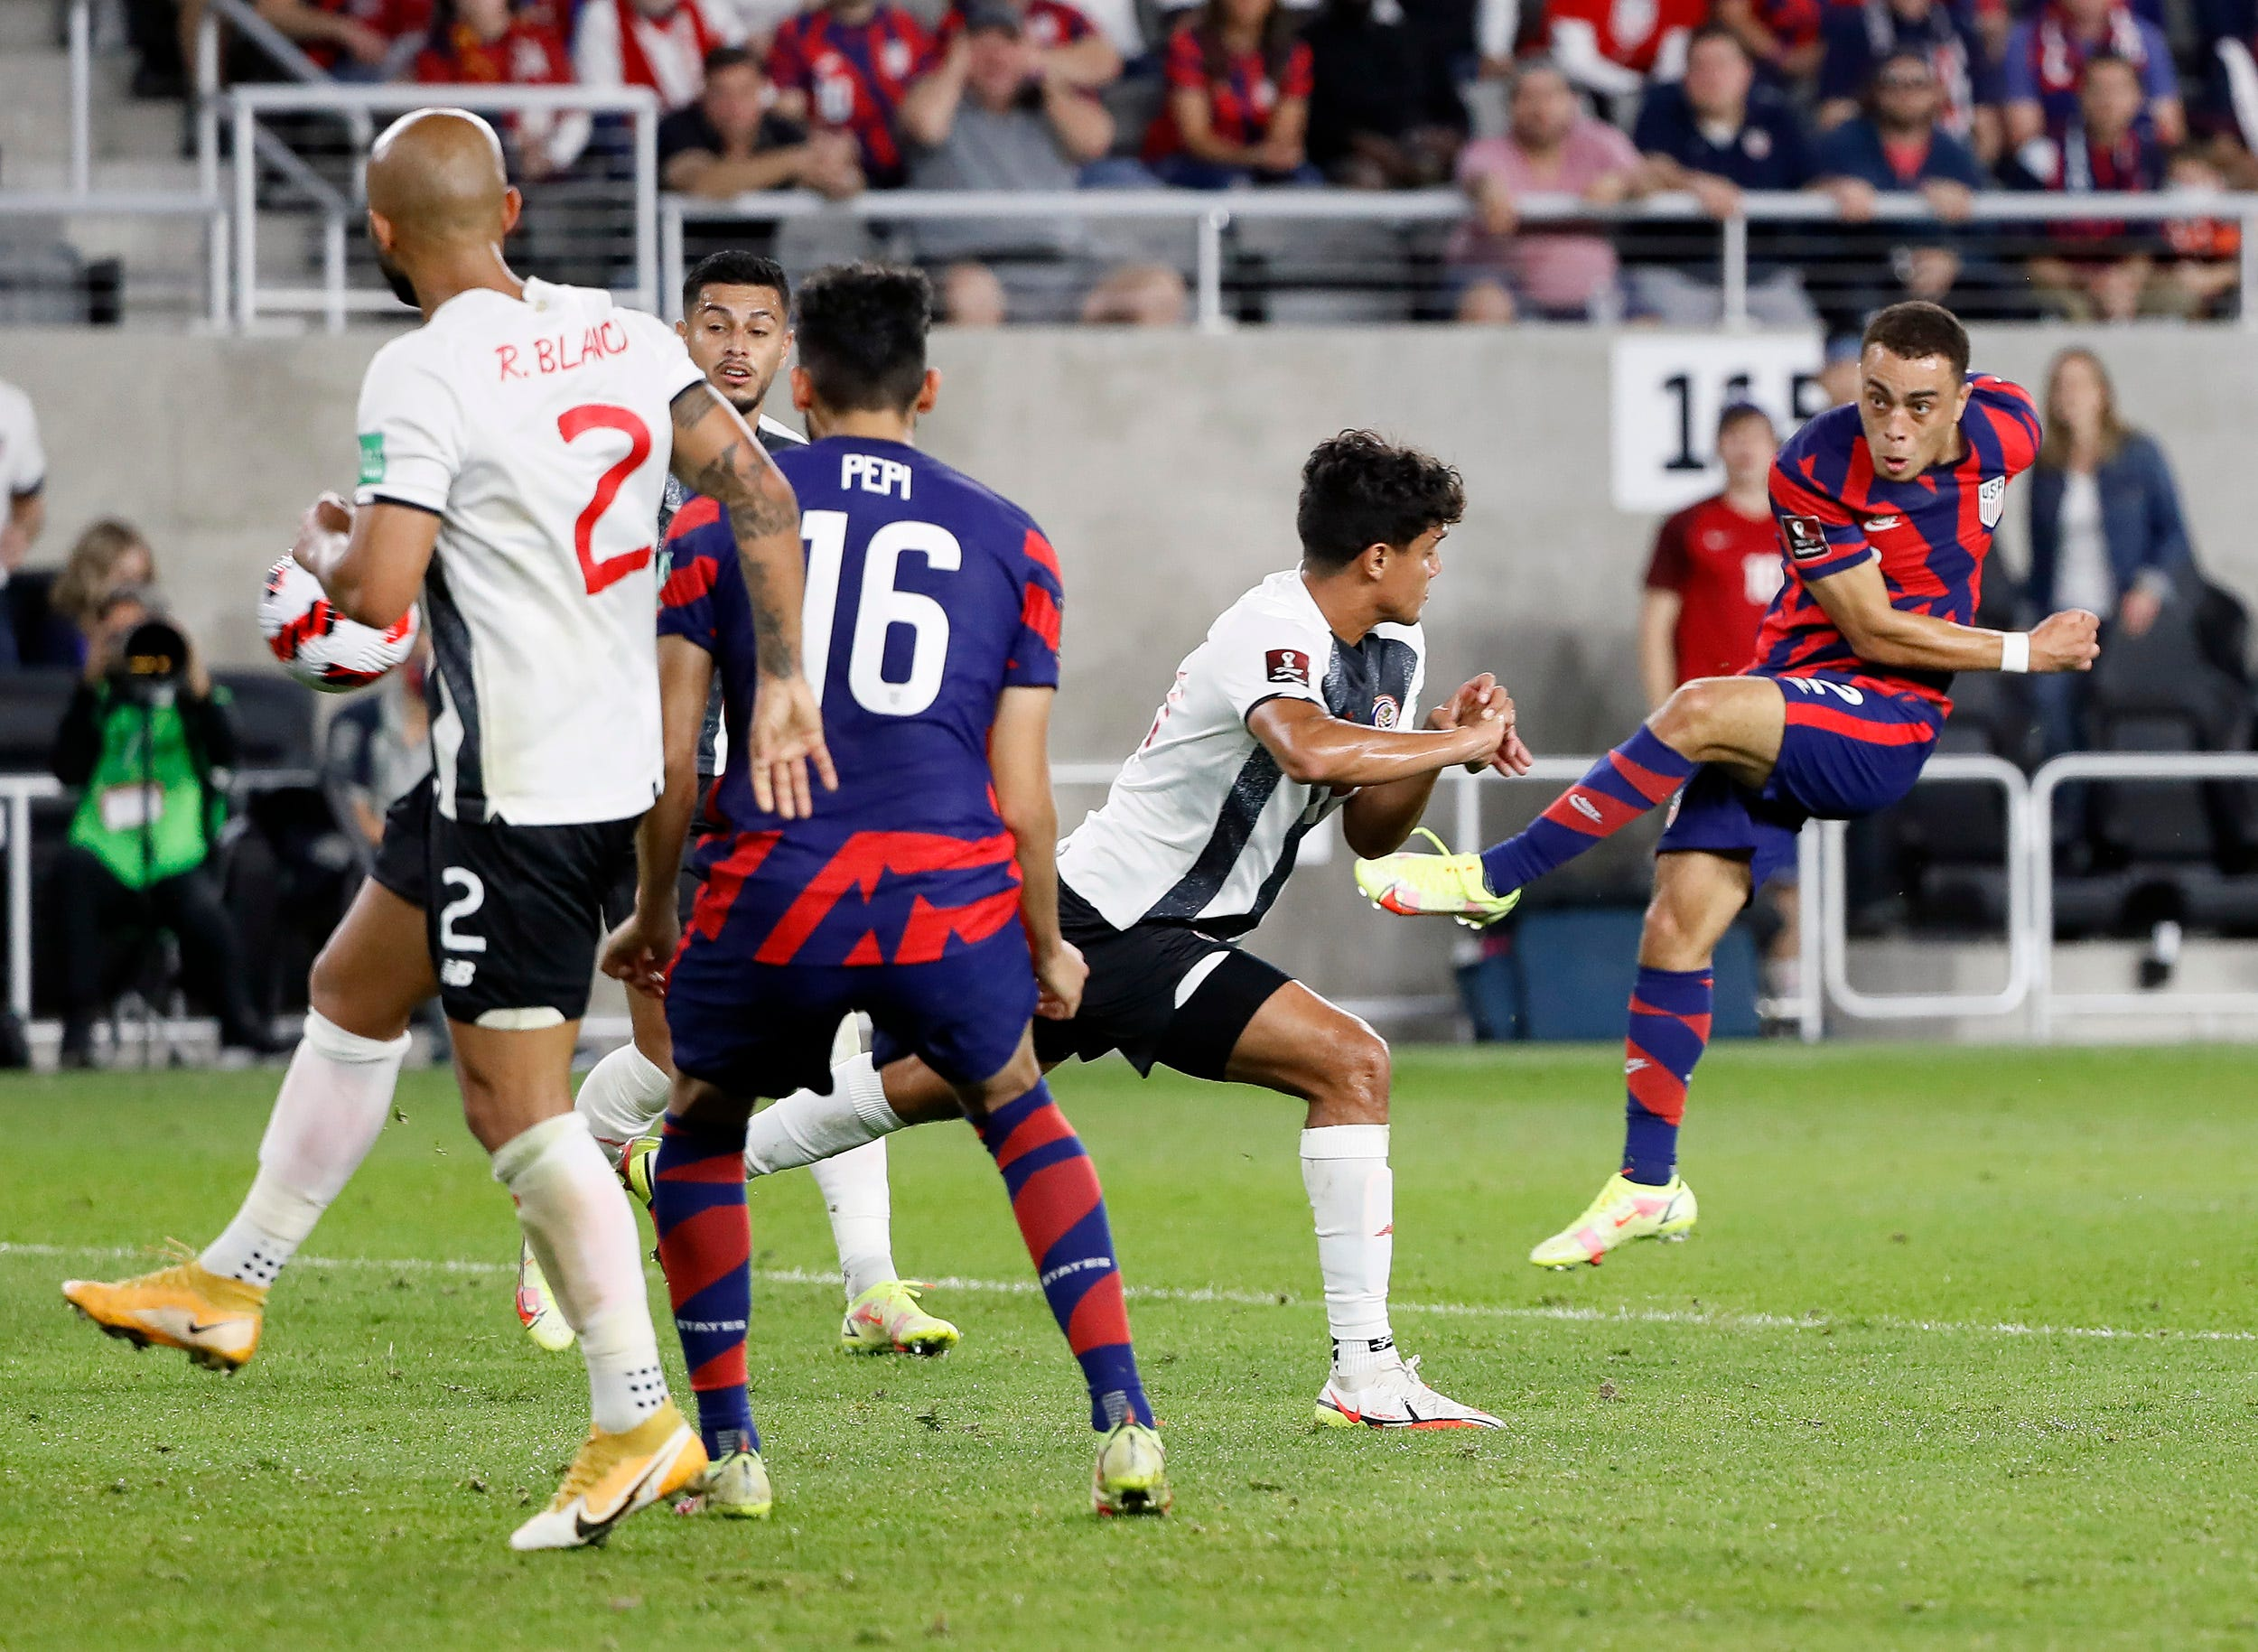 U.S. men's national soccer team erases early deficit, beats Costa Rica in World Cup qualifying